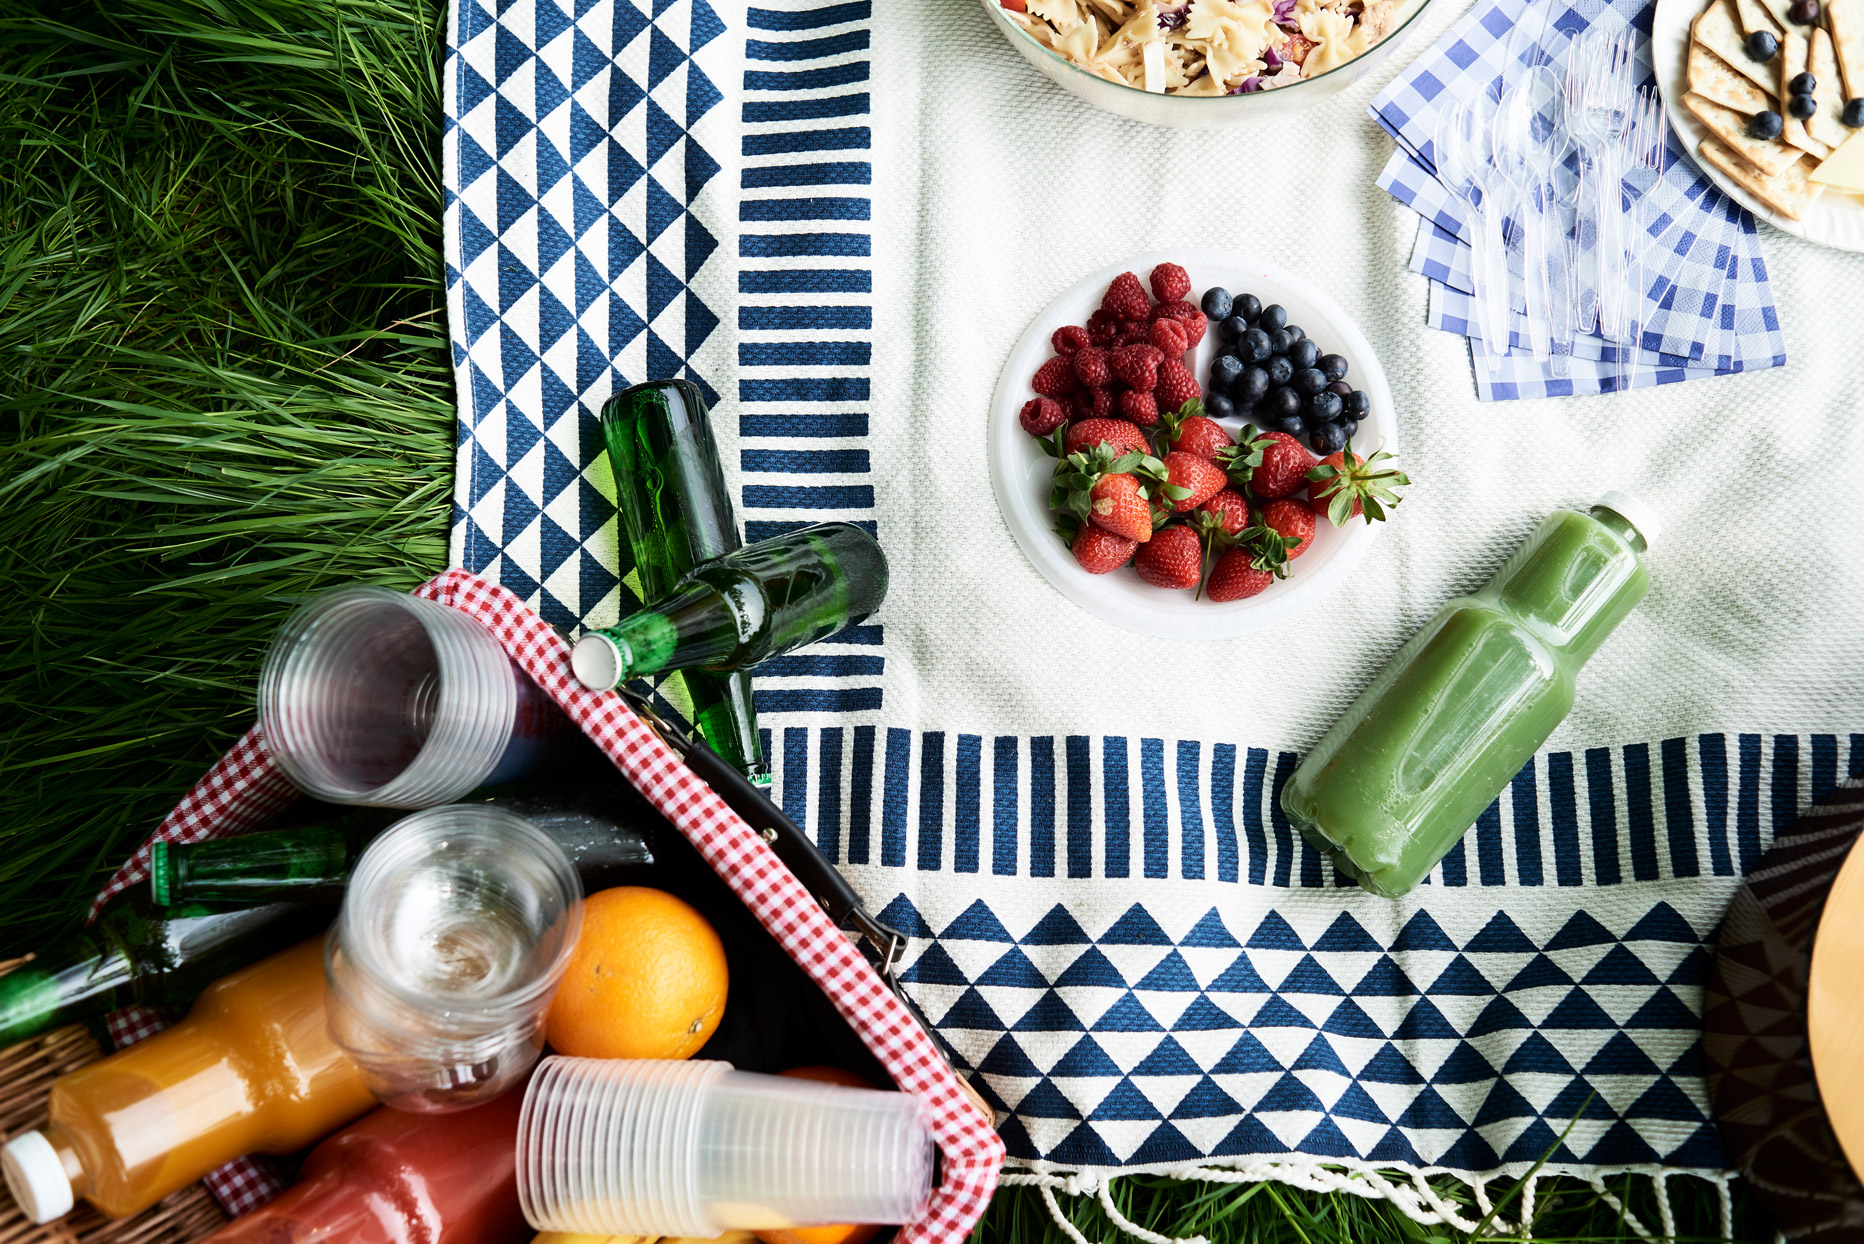 picnic blanket with food and drinks